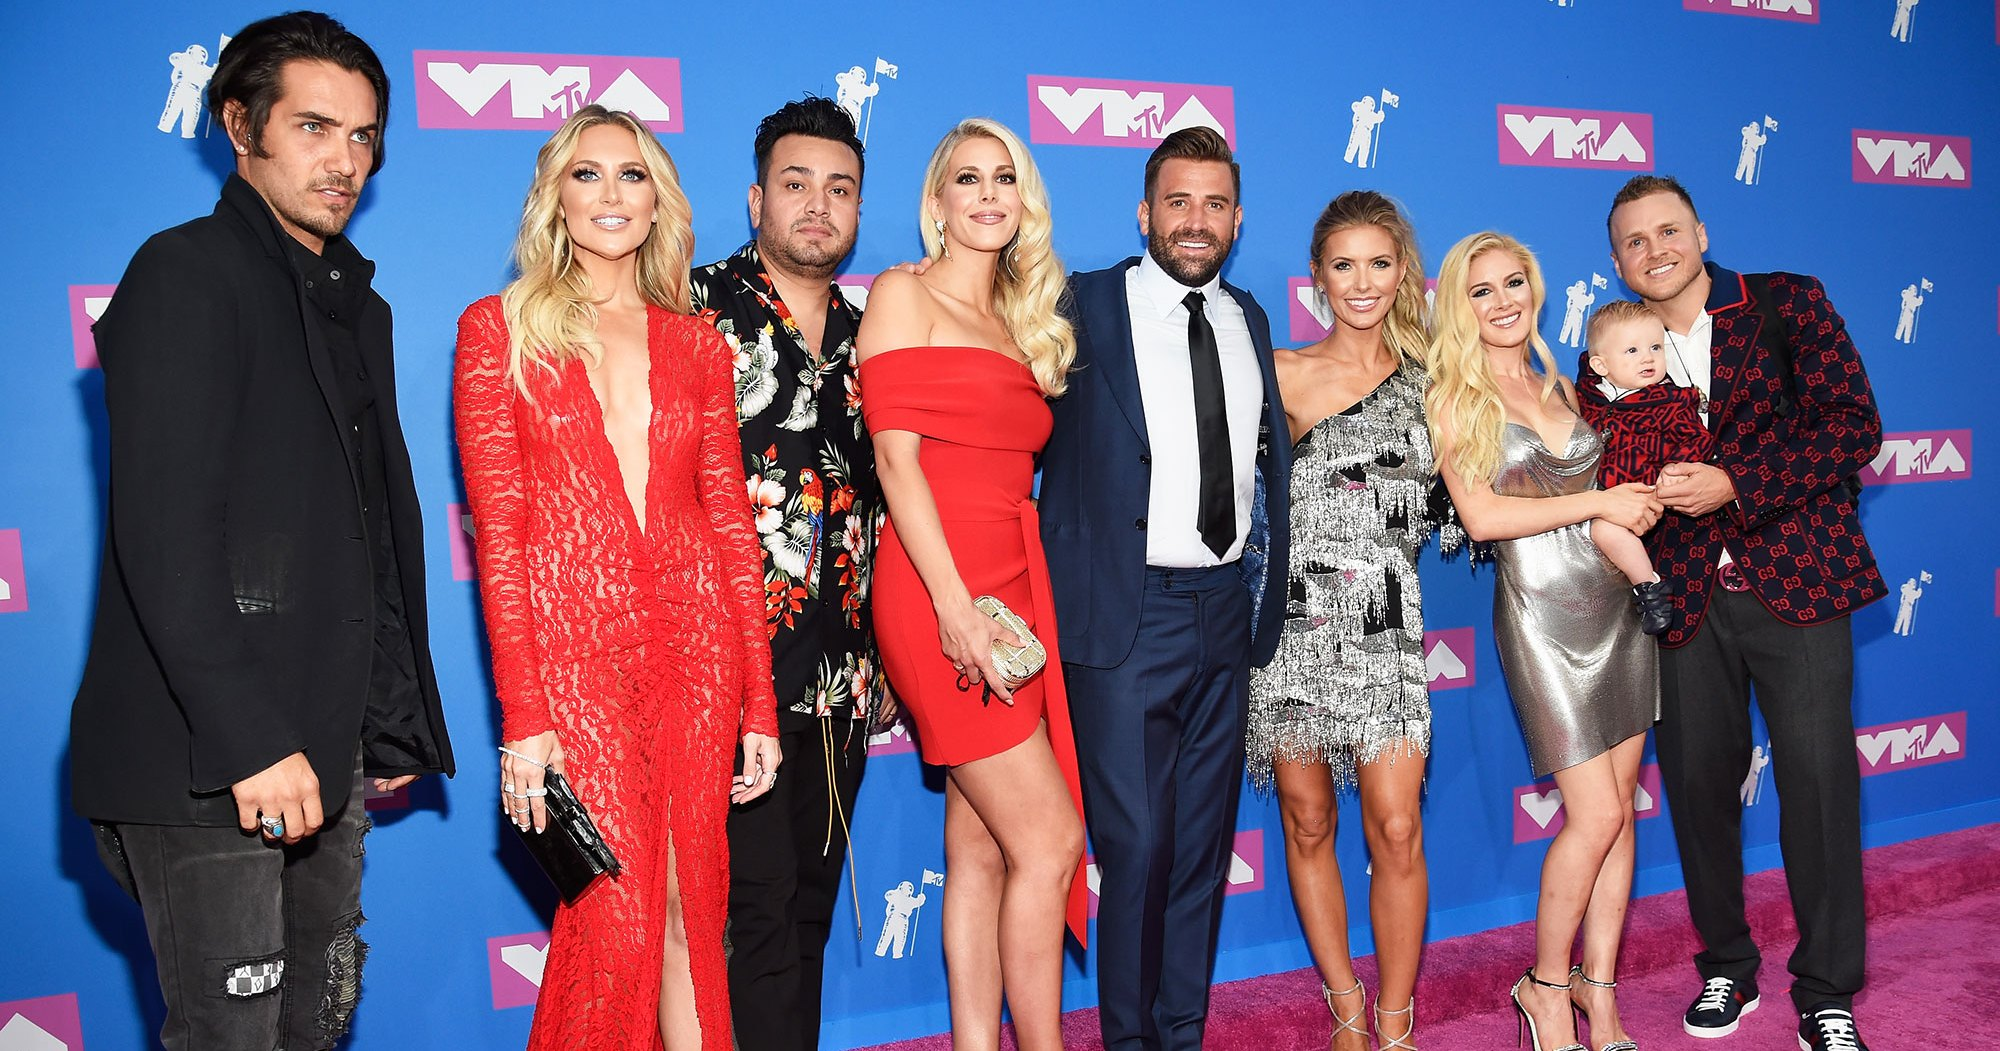 MTV's 'The Hills' Revival: Everything We Know About 'New Beginnings'